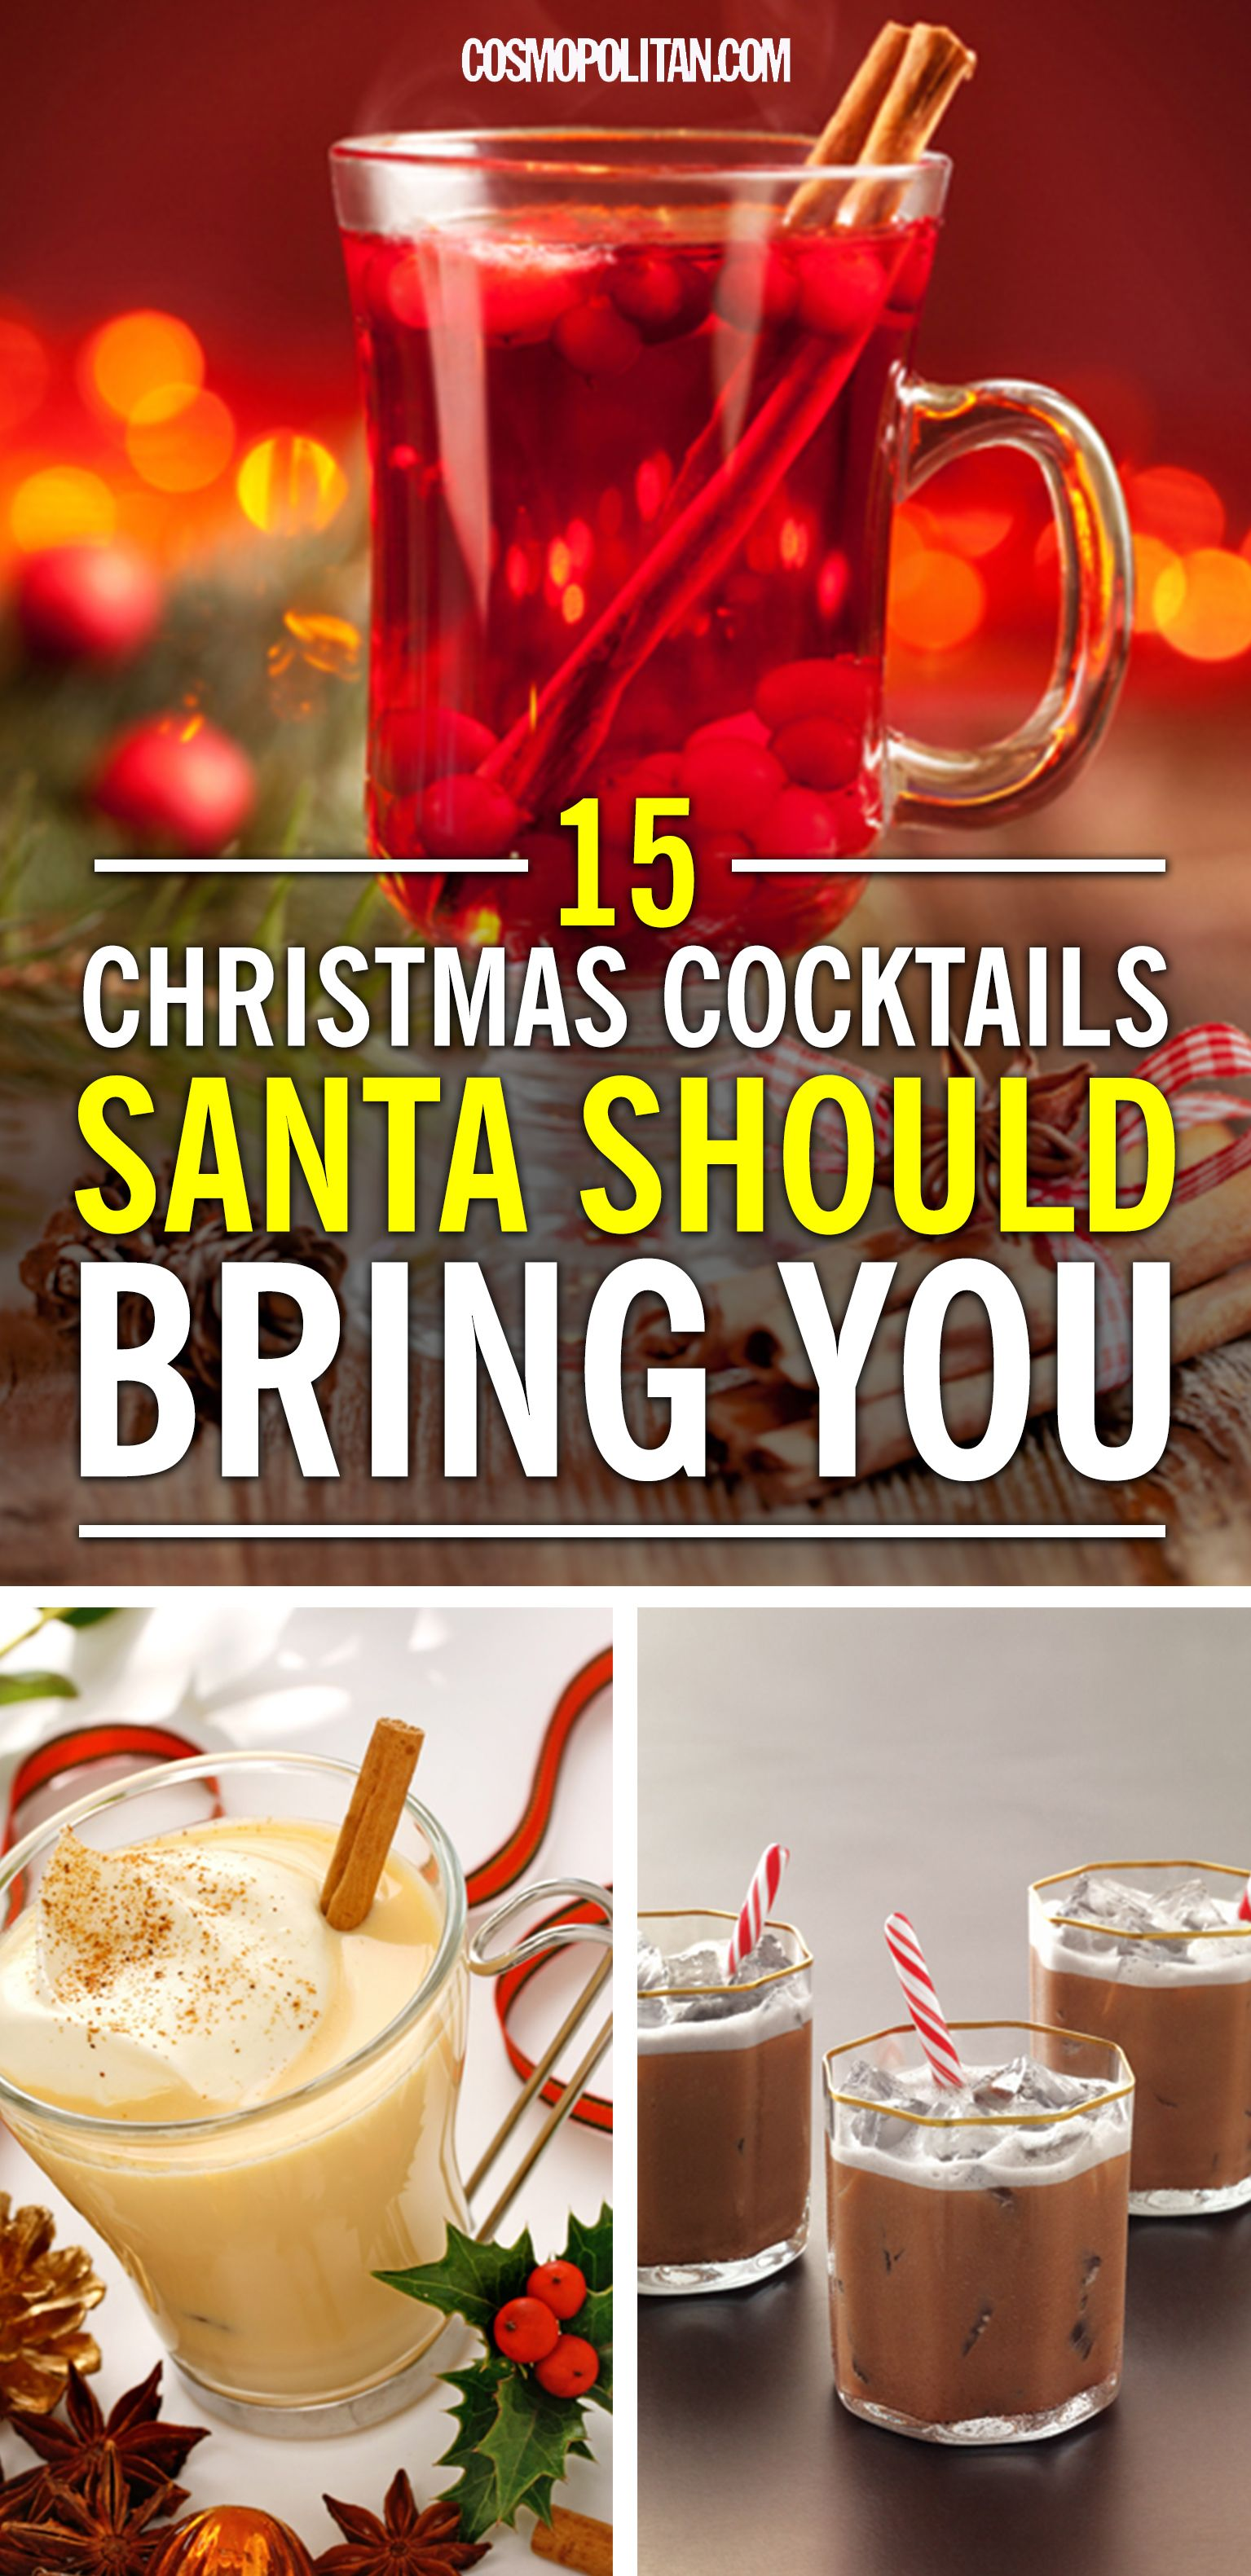 These Christmas Cocktails Will Get You Through That ...